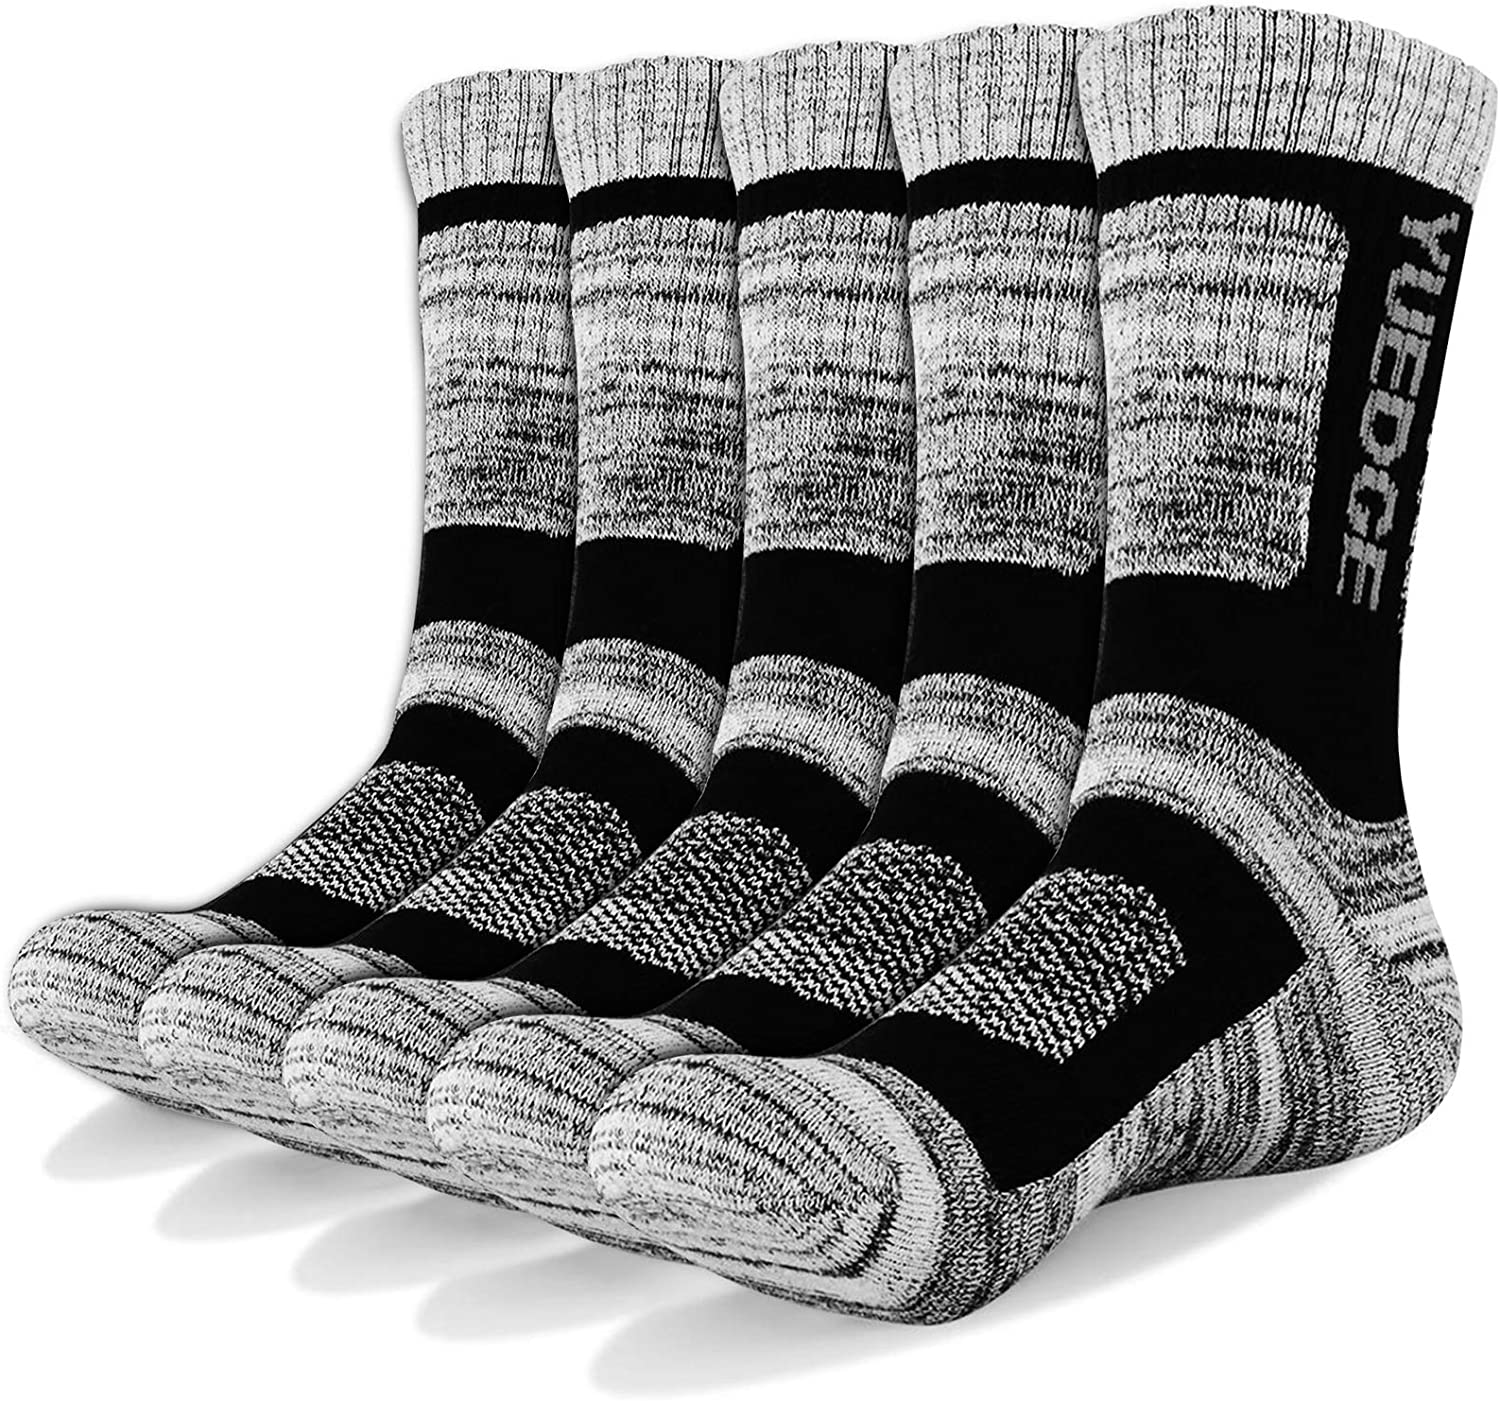 YUEDGE Men's 5 Pairs Athletic Socks Breathable Cushion Comfortable Casual Crew Socks Performance Multi Wicking Workout Sports Socks for Outdoor Recreation Trekking Climbing Camping Hiking